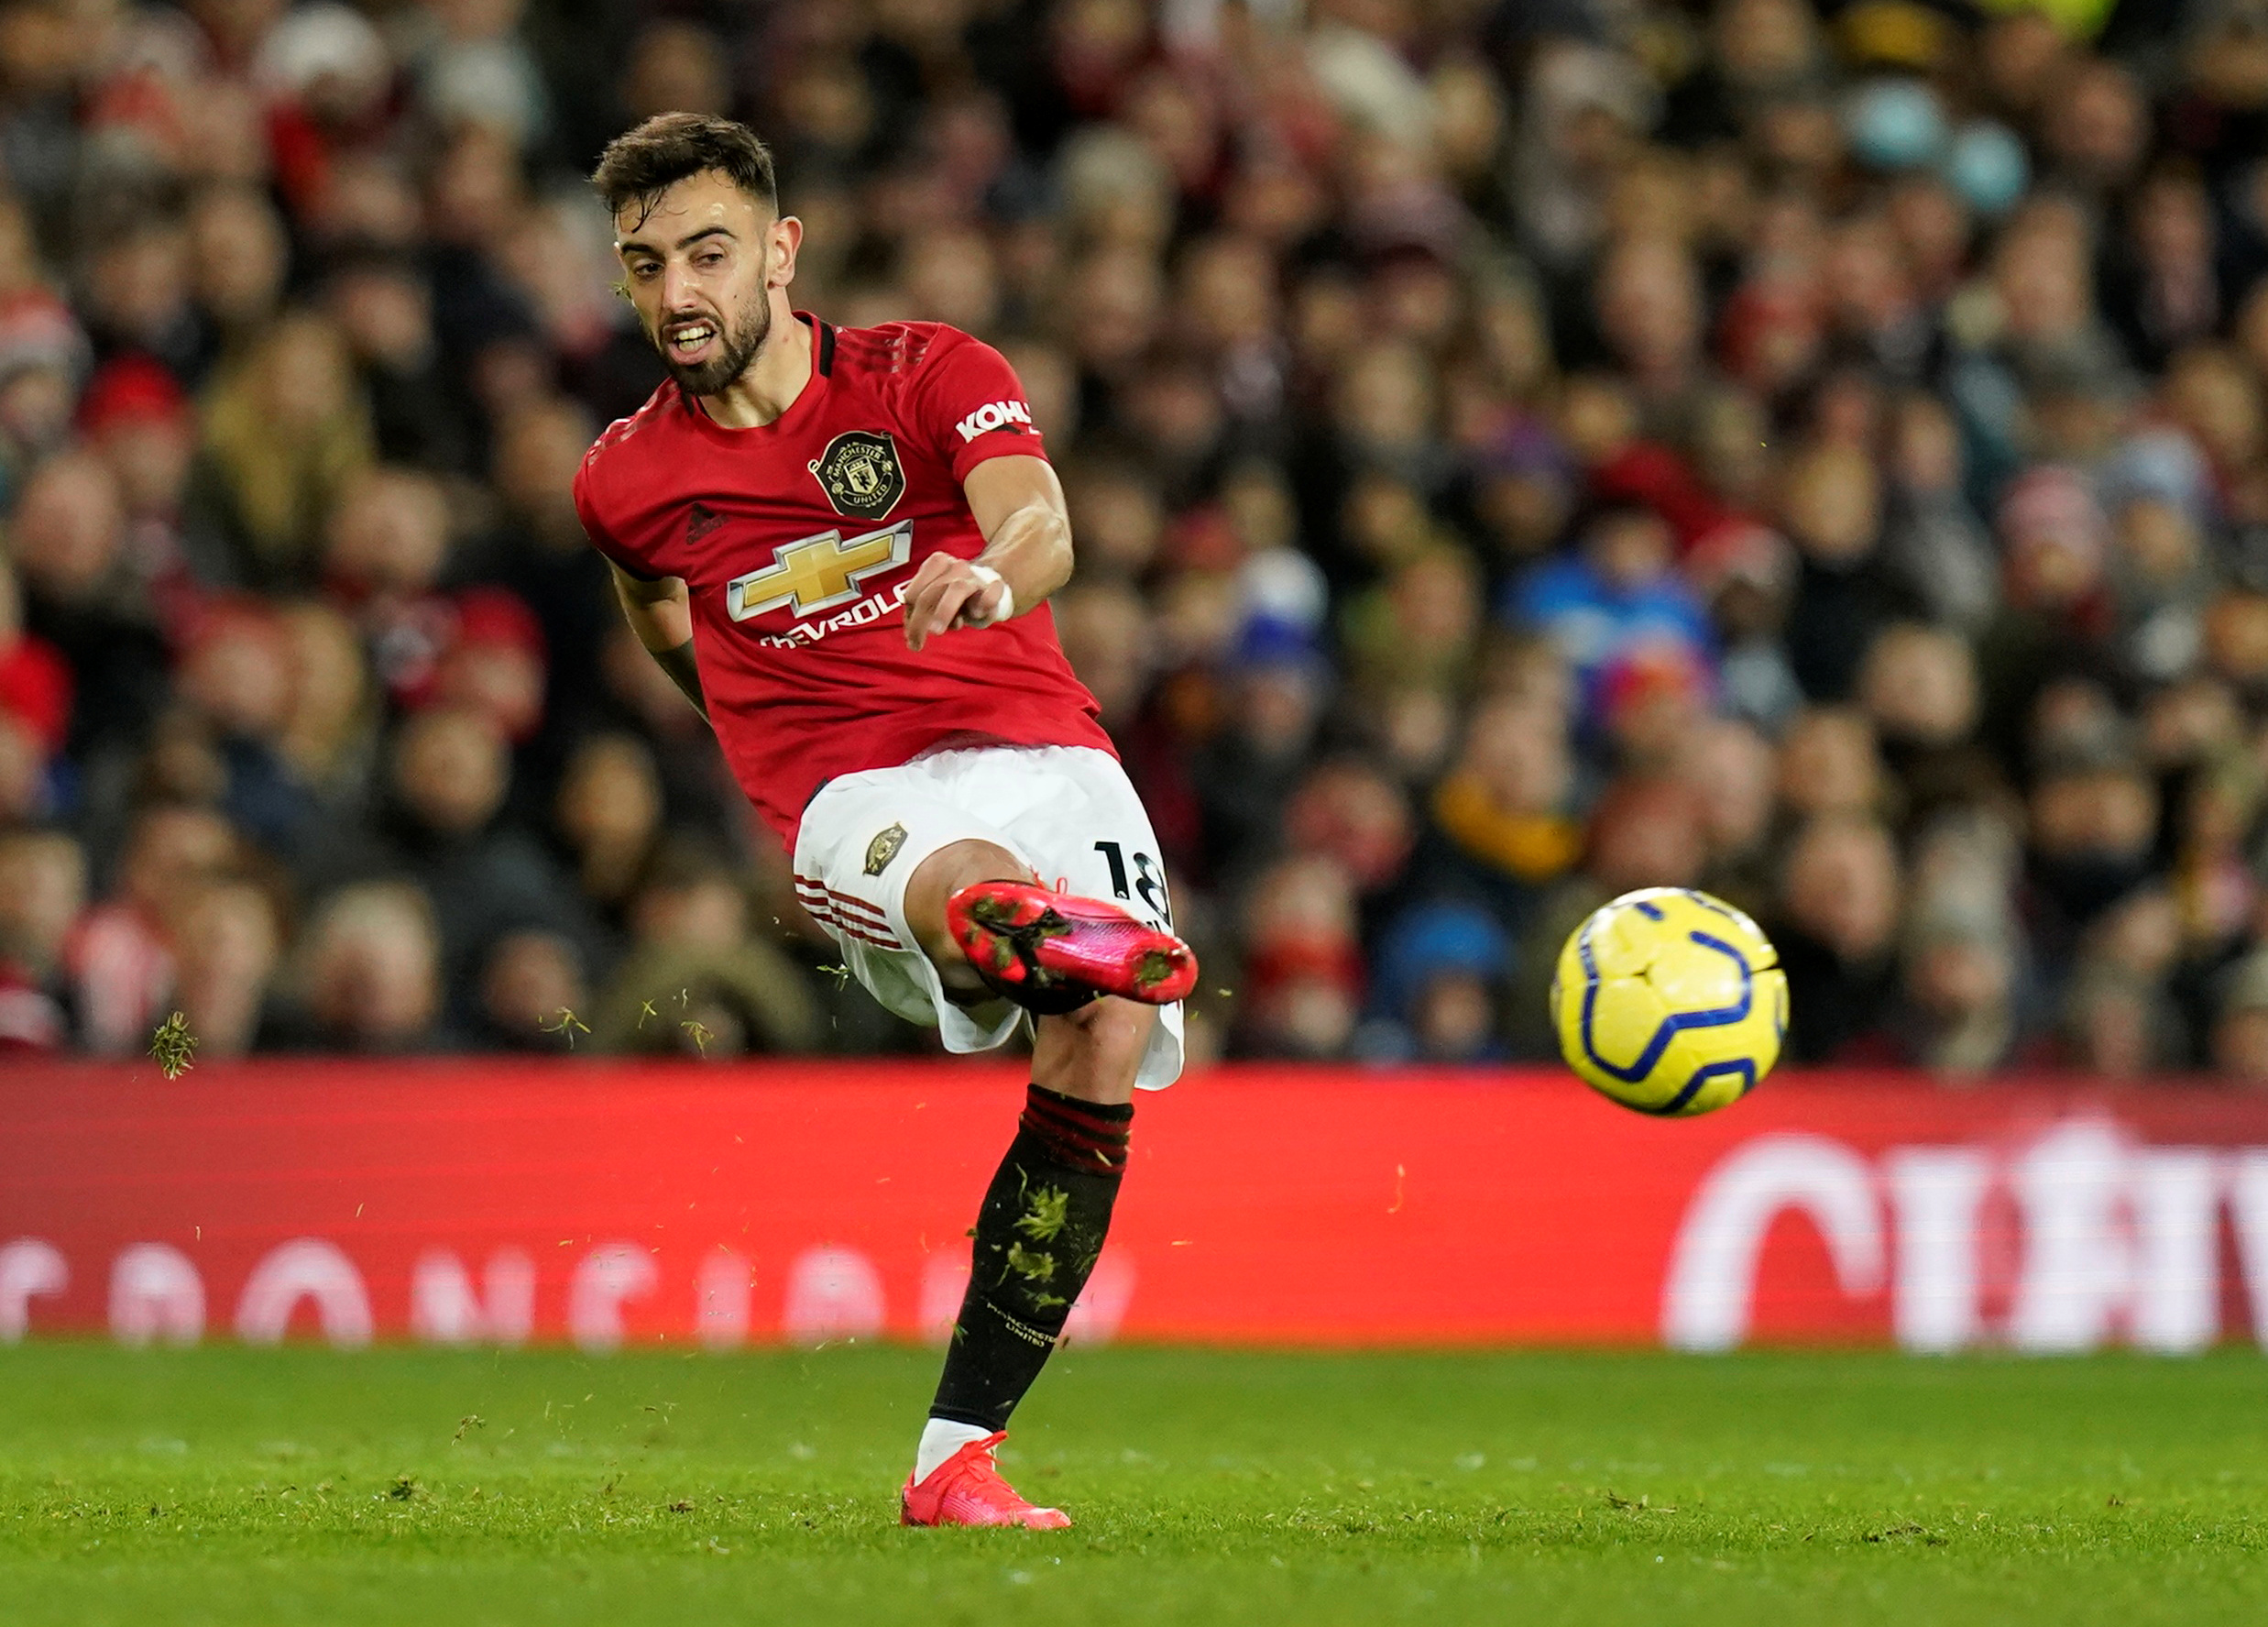 Fernandes can raise Man Utd's tempo at Chelsea